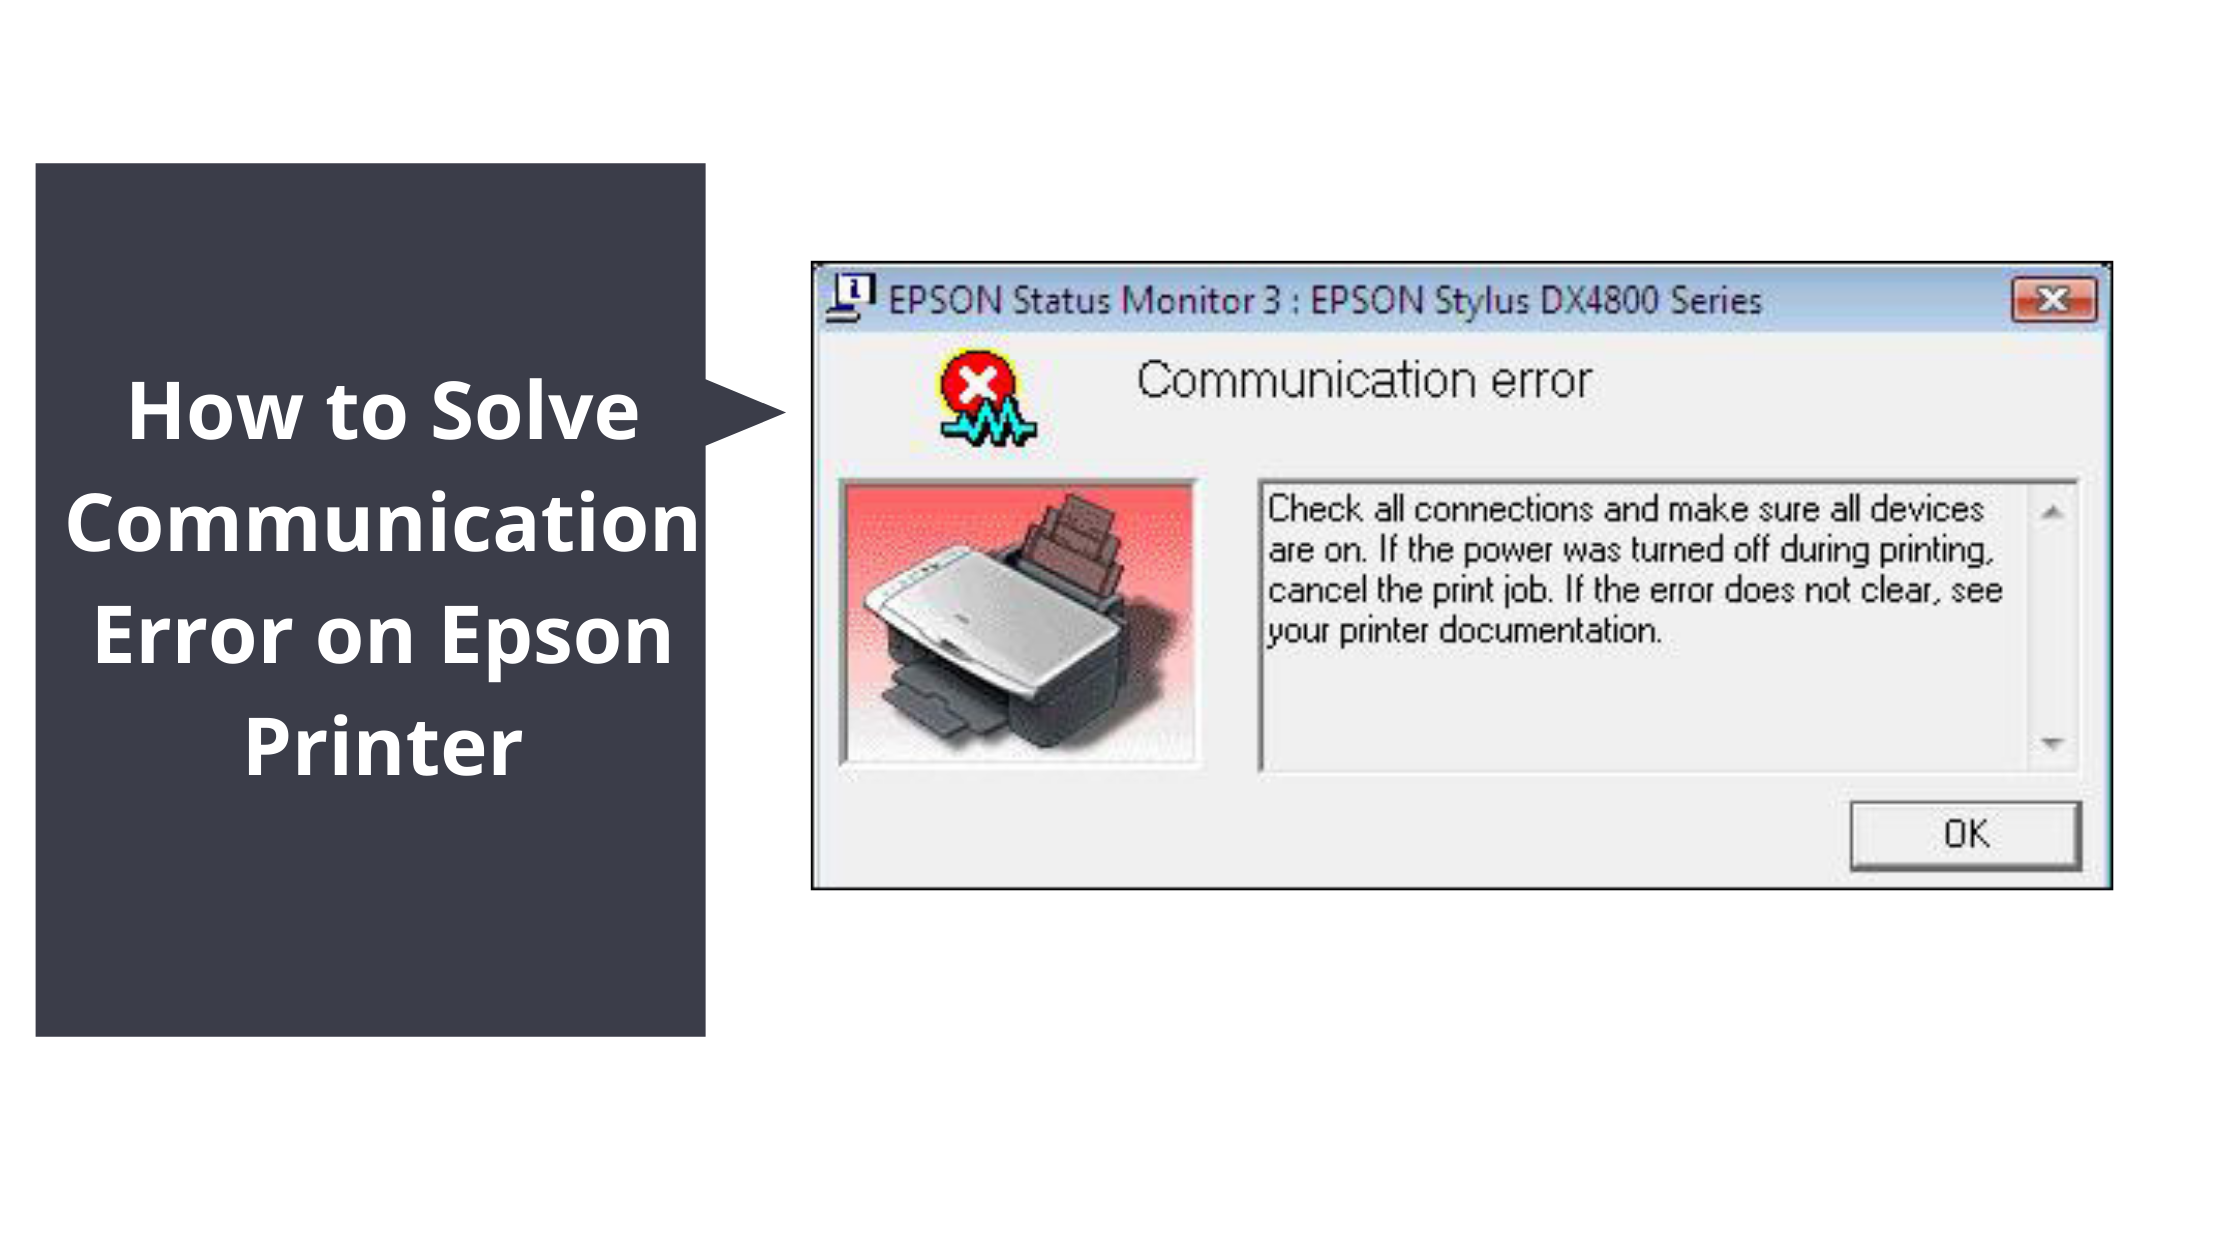 epson printer communication error